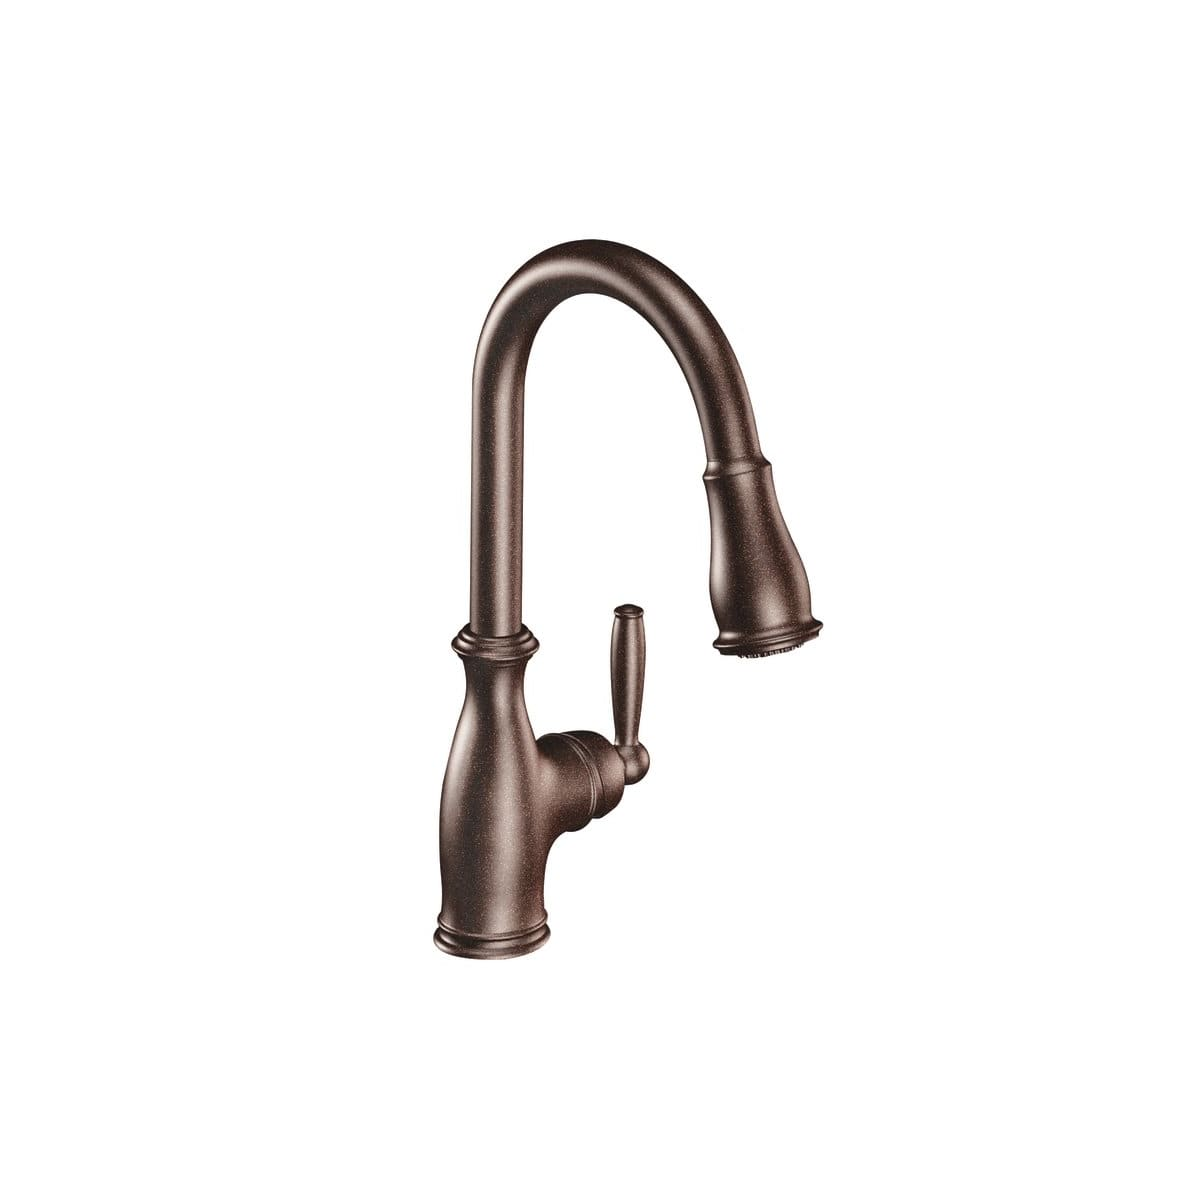 Moen 7185csl Classic Stainless Brantford Single Handle Pulldown Spray Kitchen Faucet With Reflex Technology Faucet Com